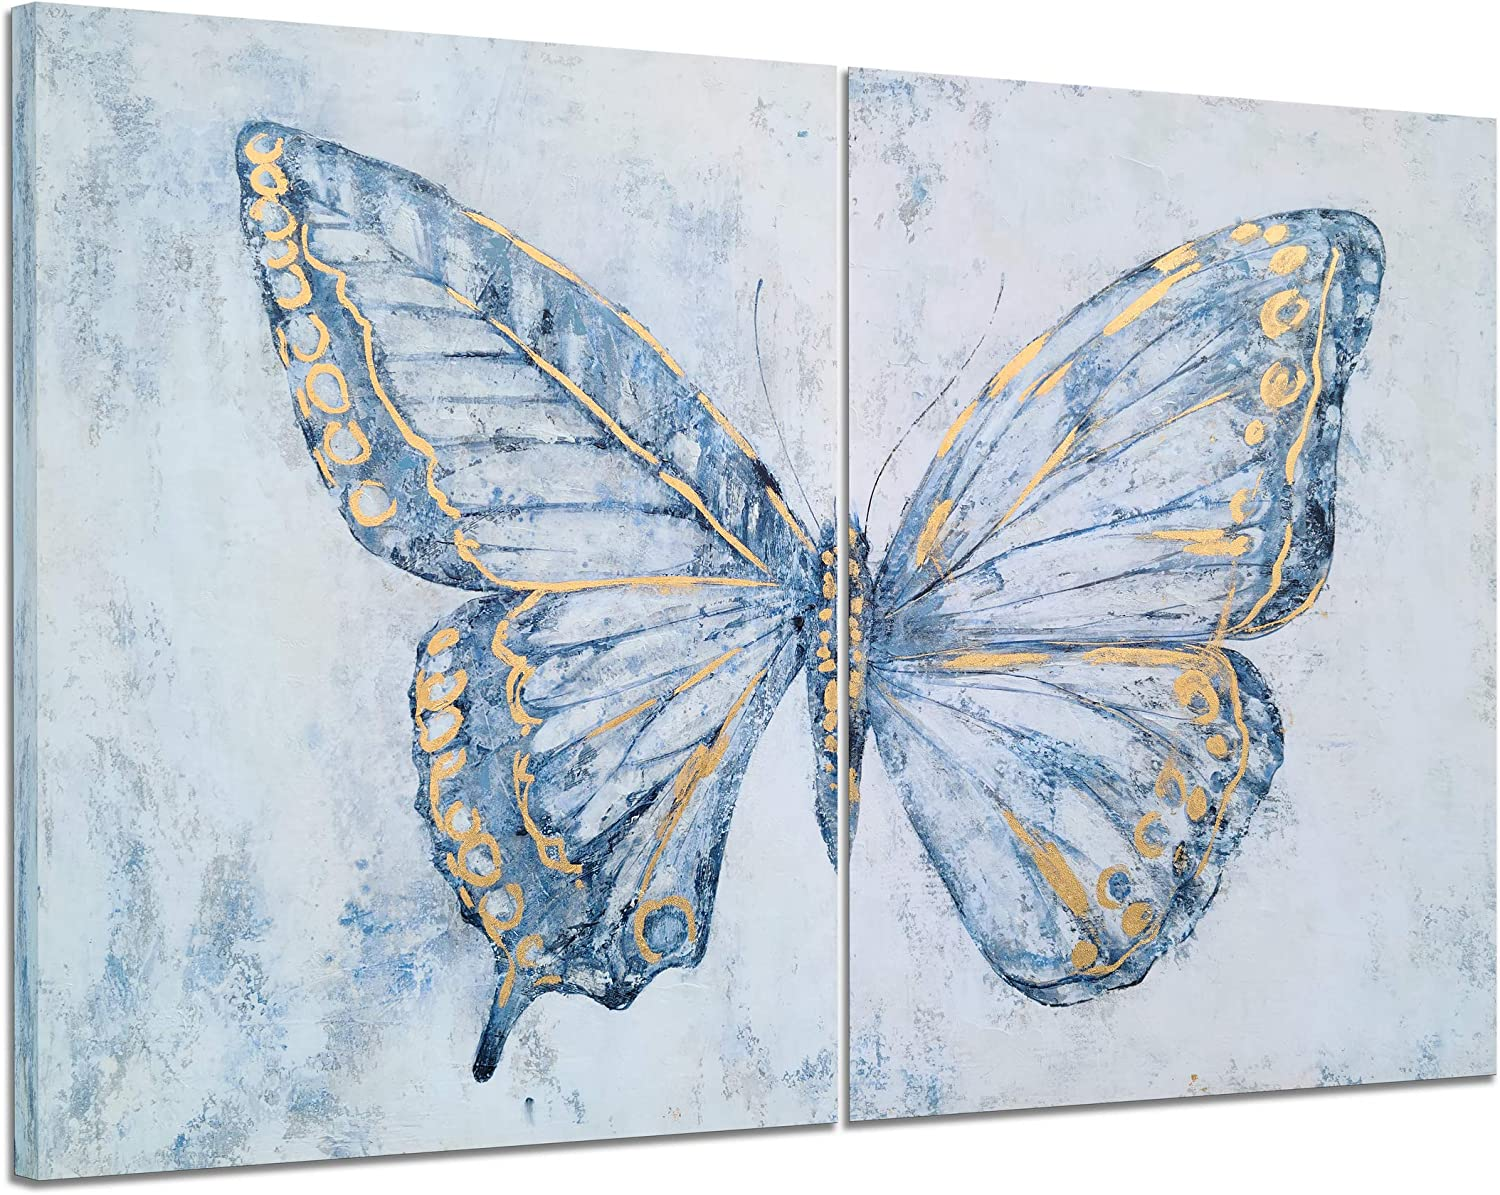 Yihui Arts Butterfly Canvas Wall Art Set Of Two Hand Painted Blue and White Paintings Modern Abstract Animal Artwork with Gold Foil for Living Room Bedroom Bathroom Nursery Decor